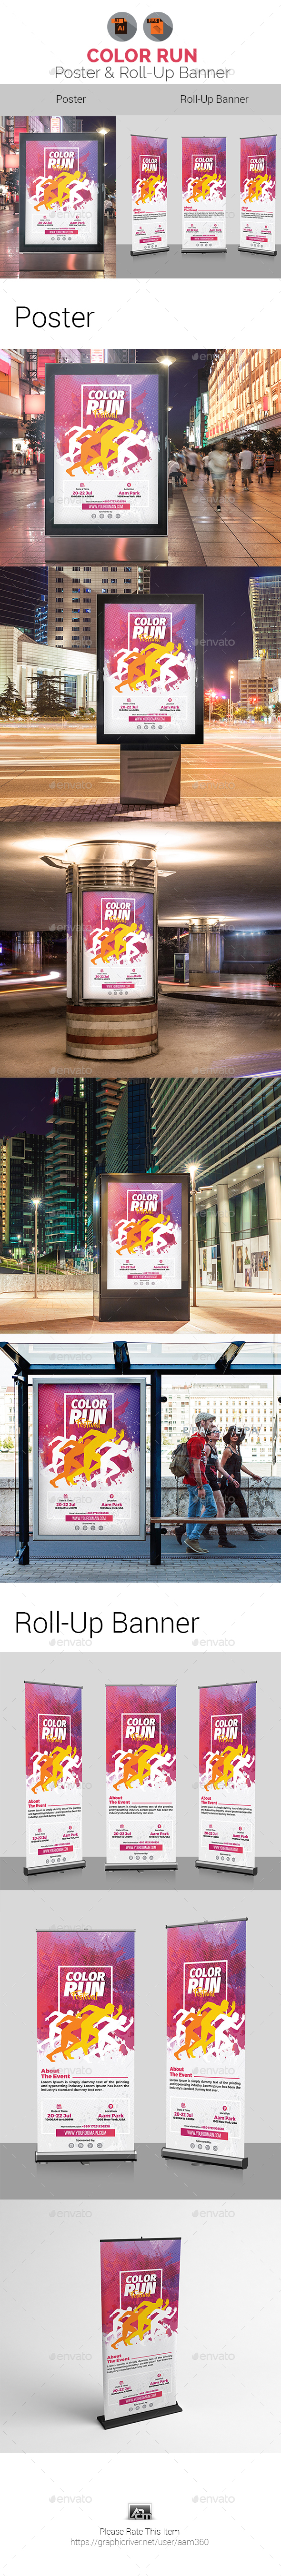 Color Run Festival Poster & Roll-Up Banner - Signage Print Templates